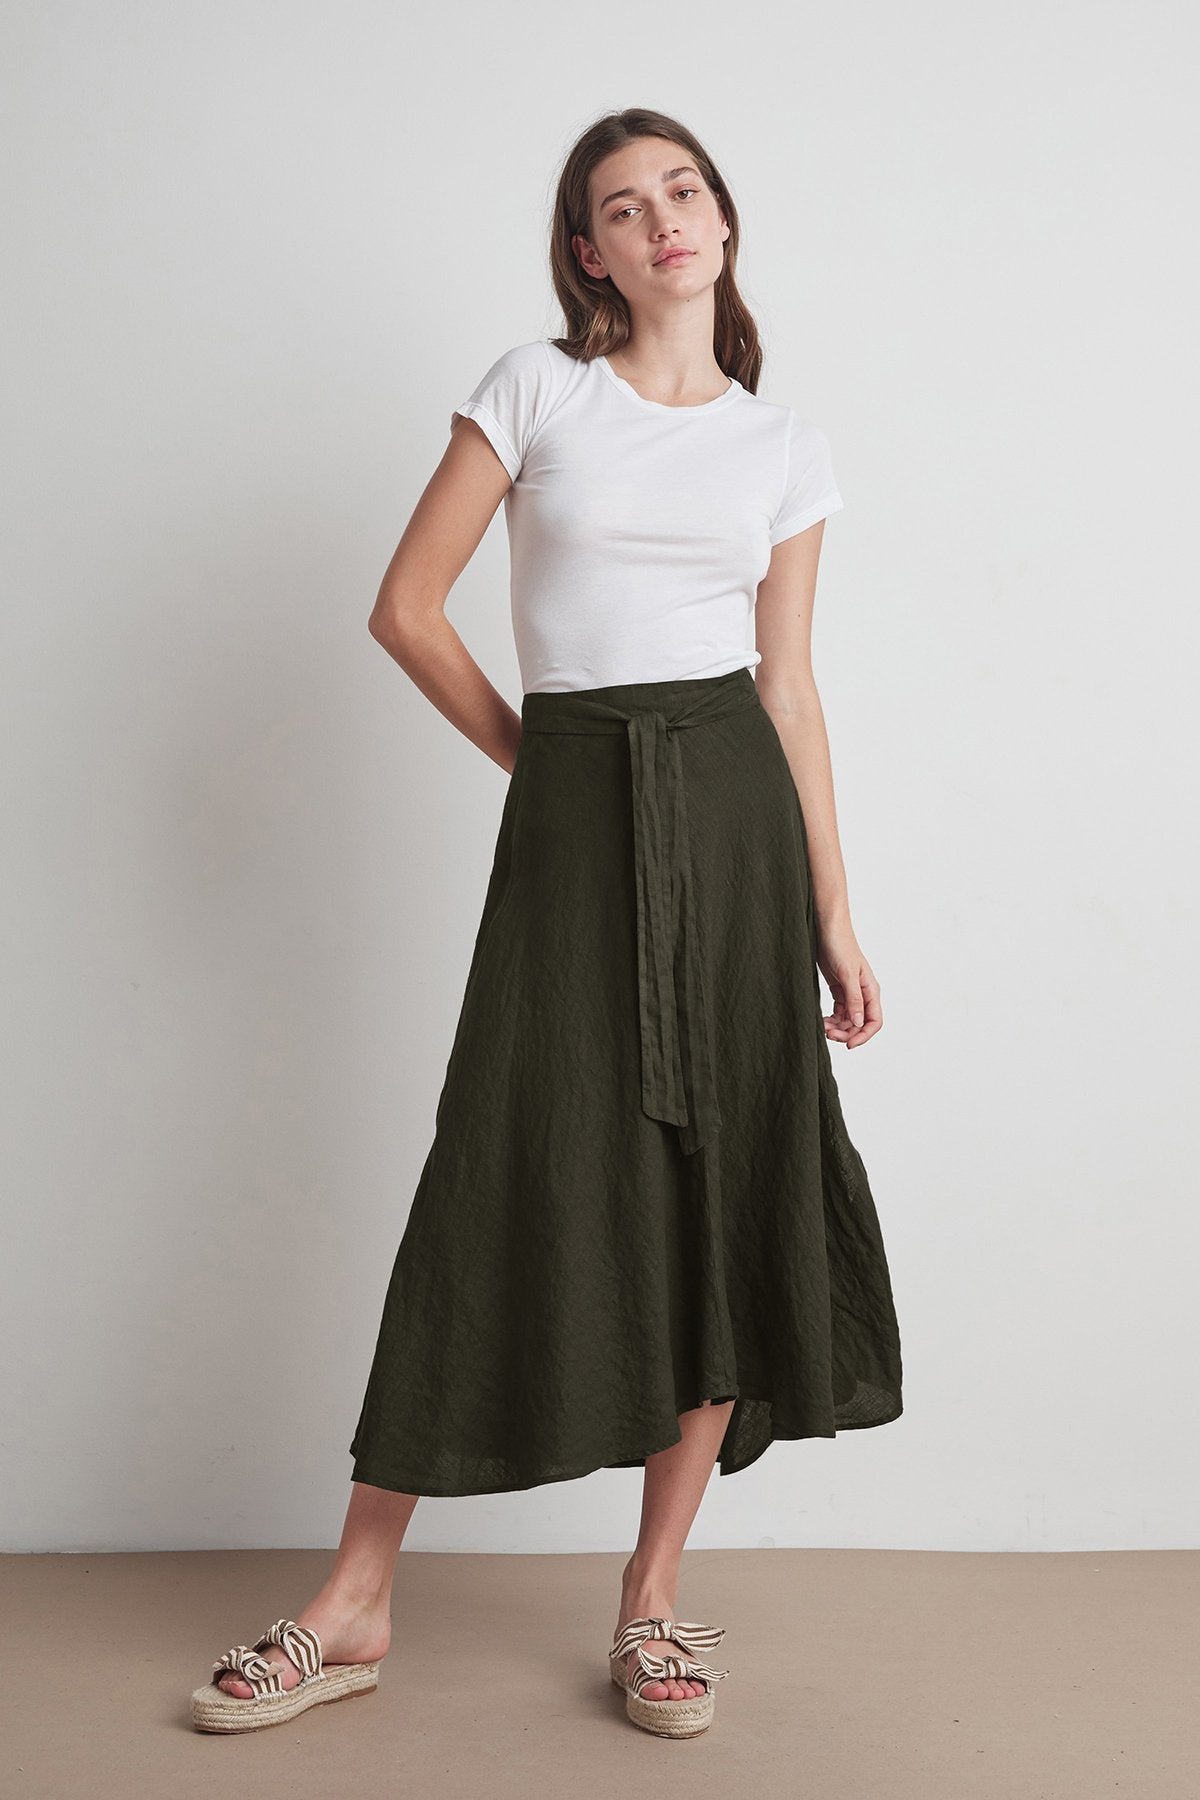 Raleigh Linen Maxi Skirt in Dillweed